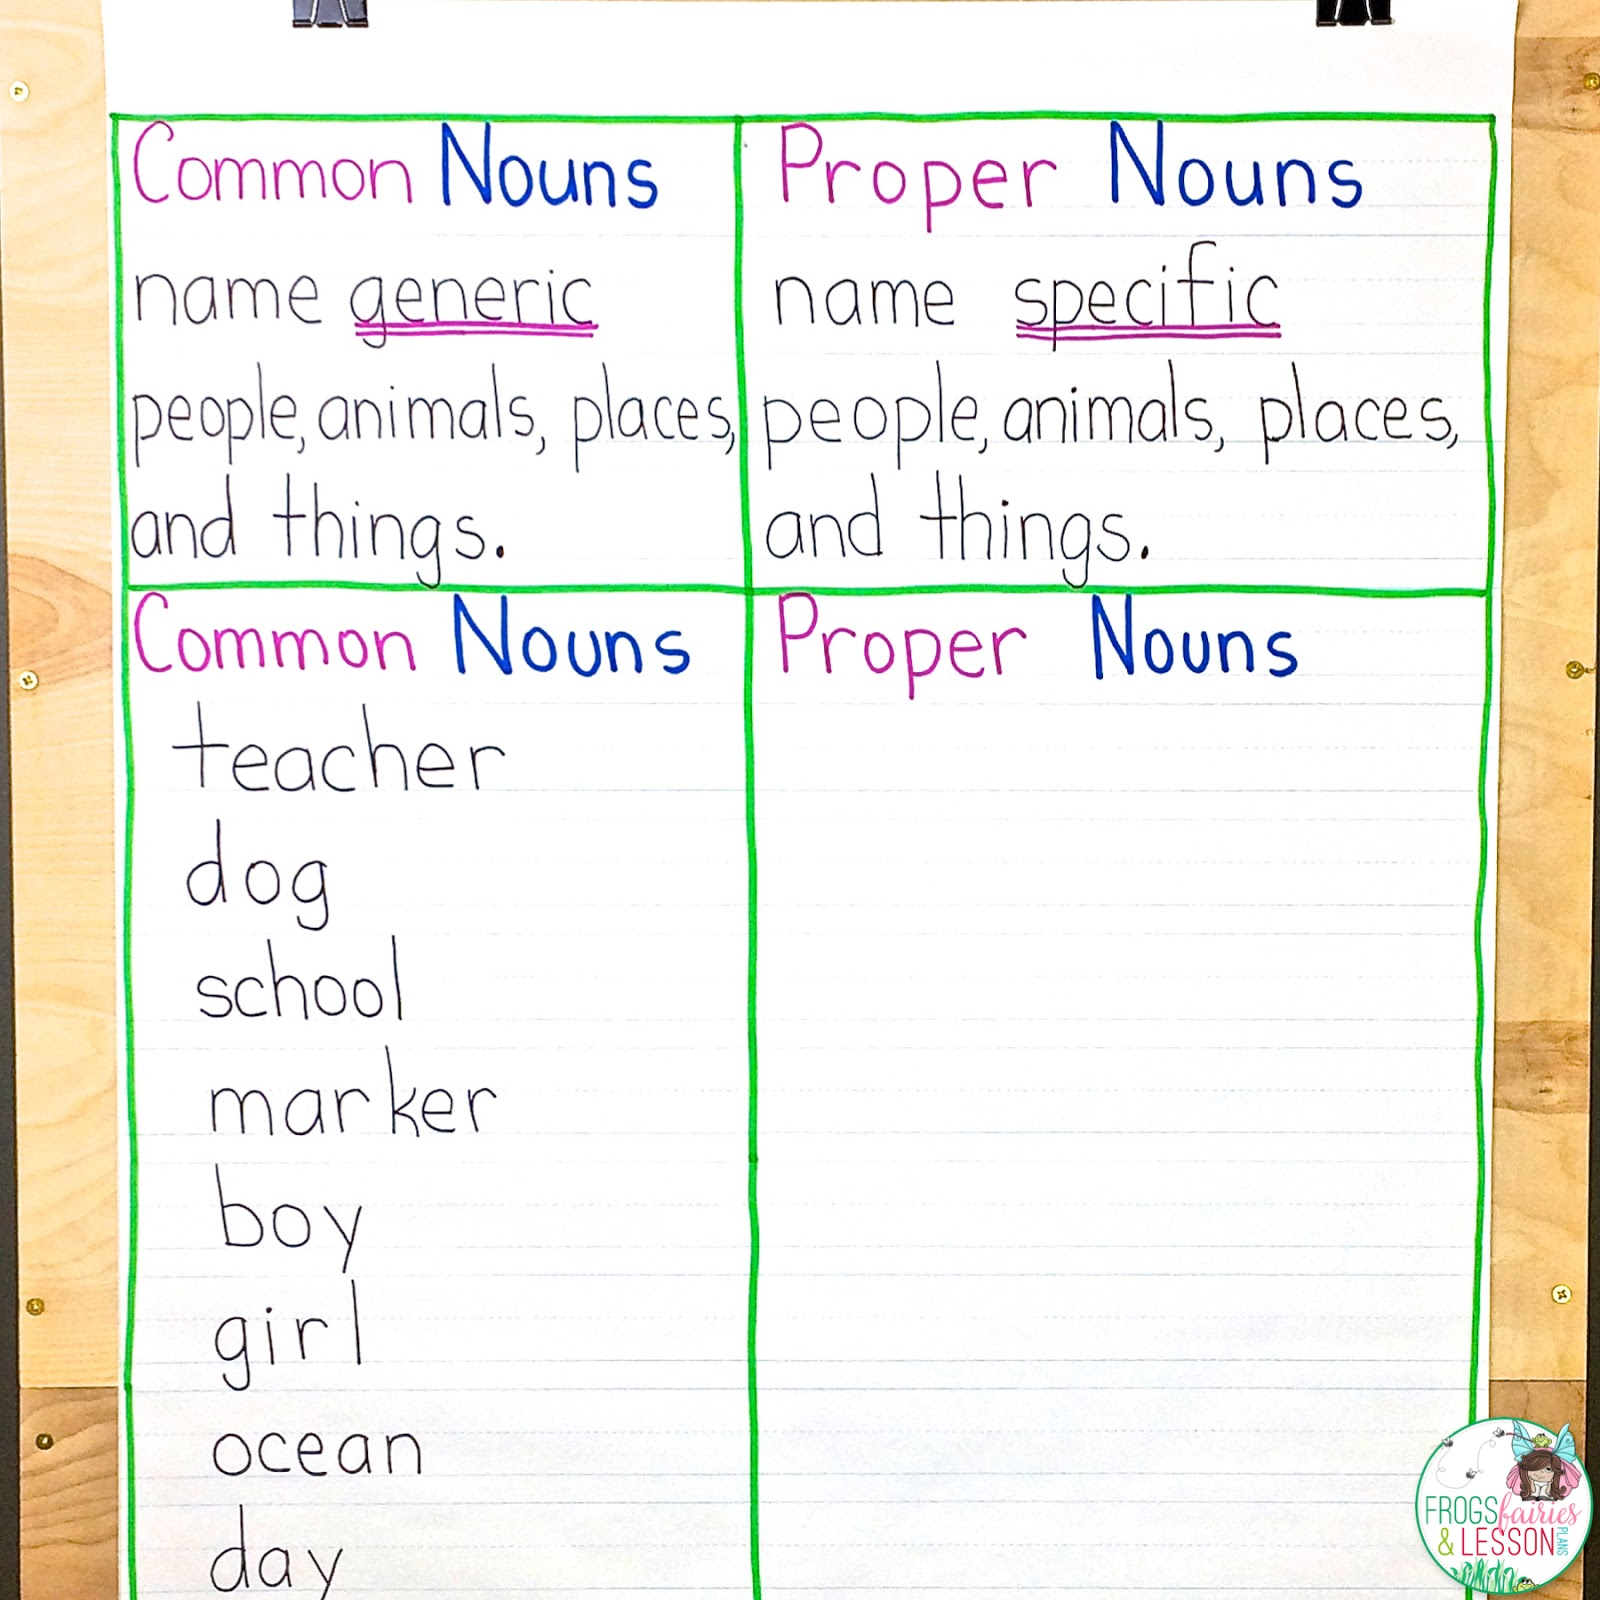 Worksheet Is A Dog A Person Place Or Thing frogs fairies and lesson plans 5 noun lessons you need to teach next i tell them that proper nouns are special the name of a very specific person animal place thing